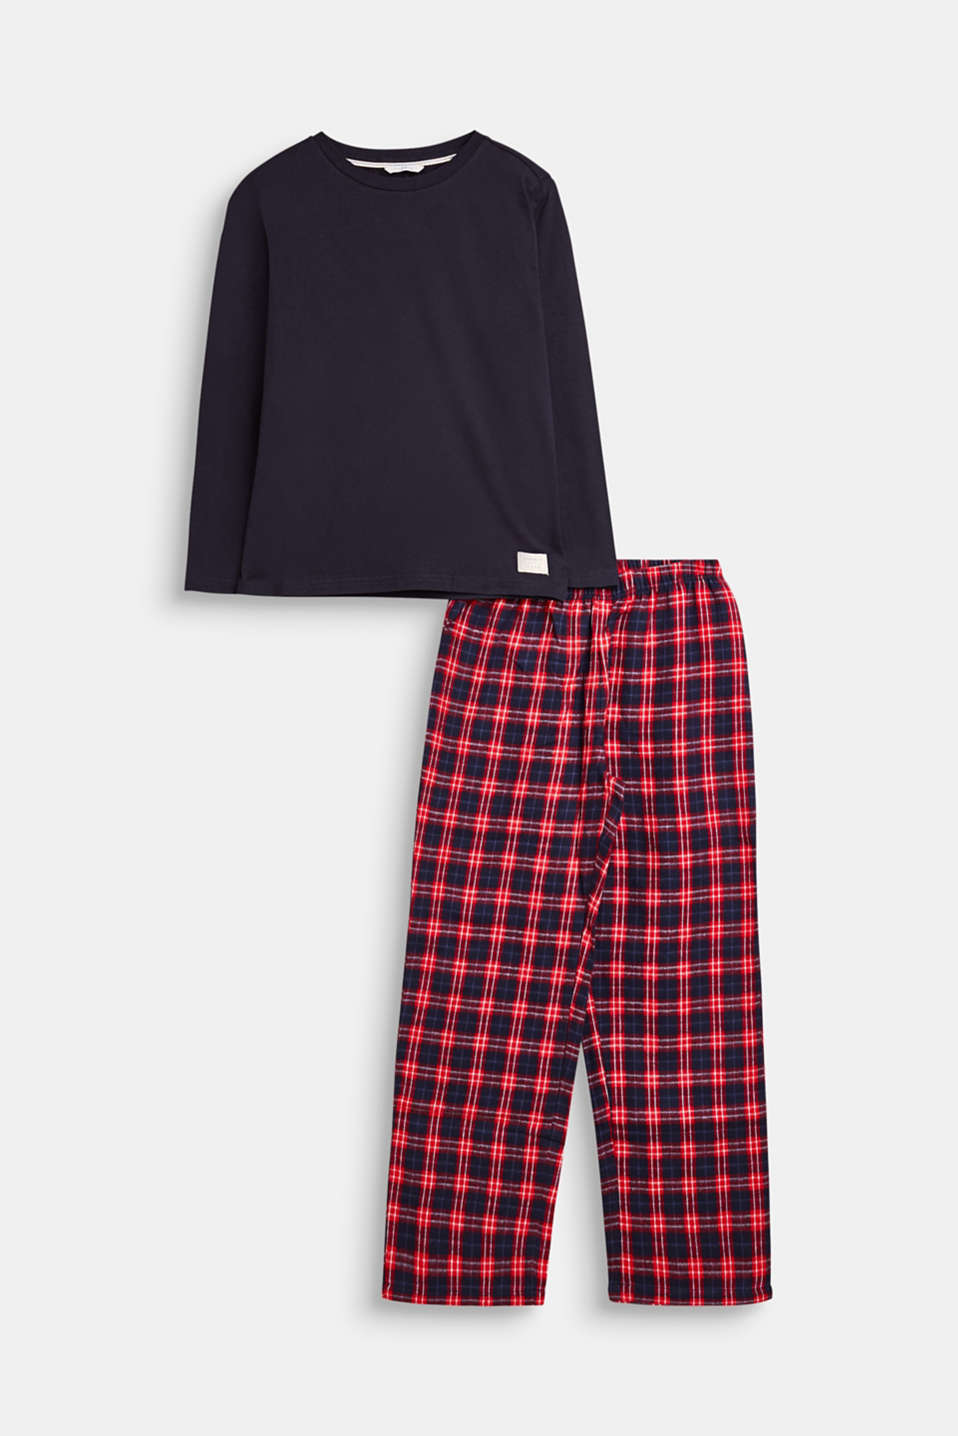 Esprit - Jersey and flannel pyjamas, 100% cotton